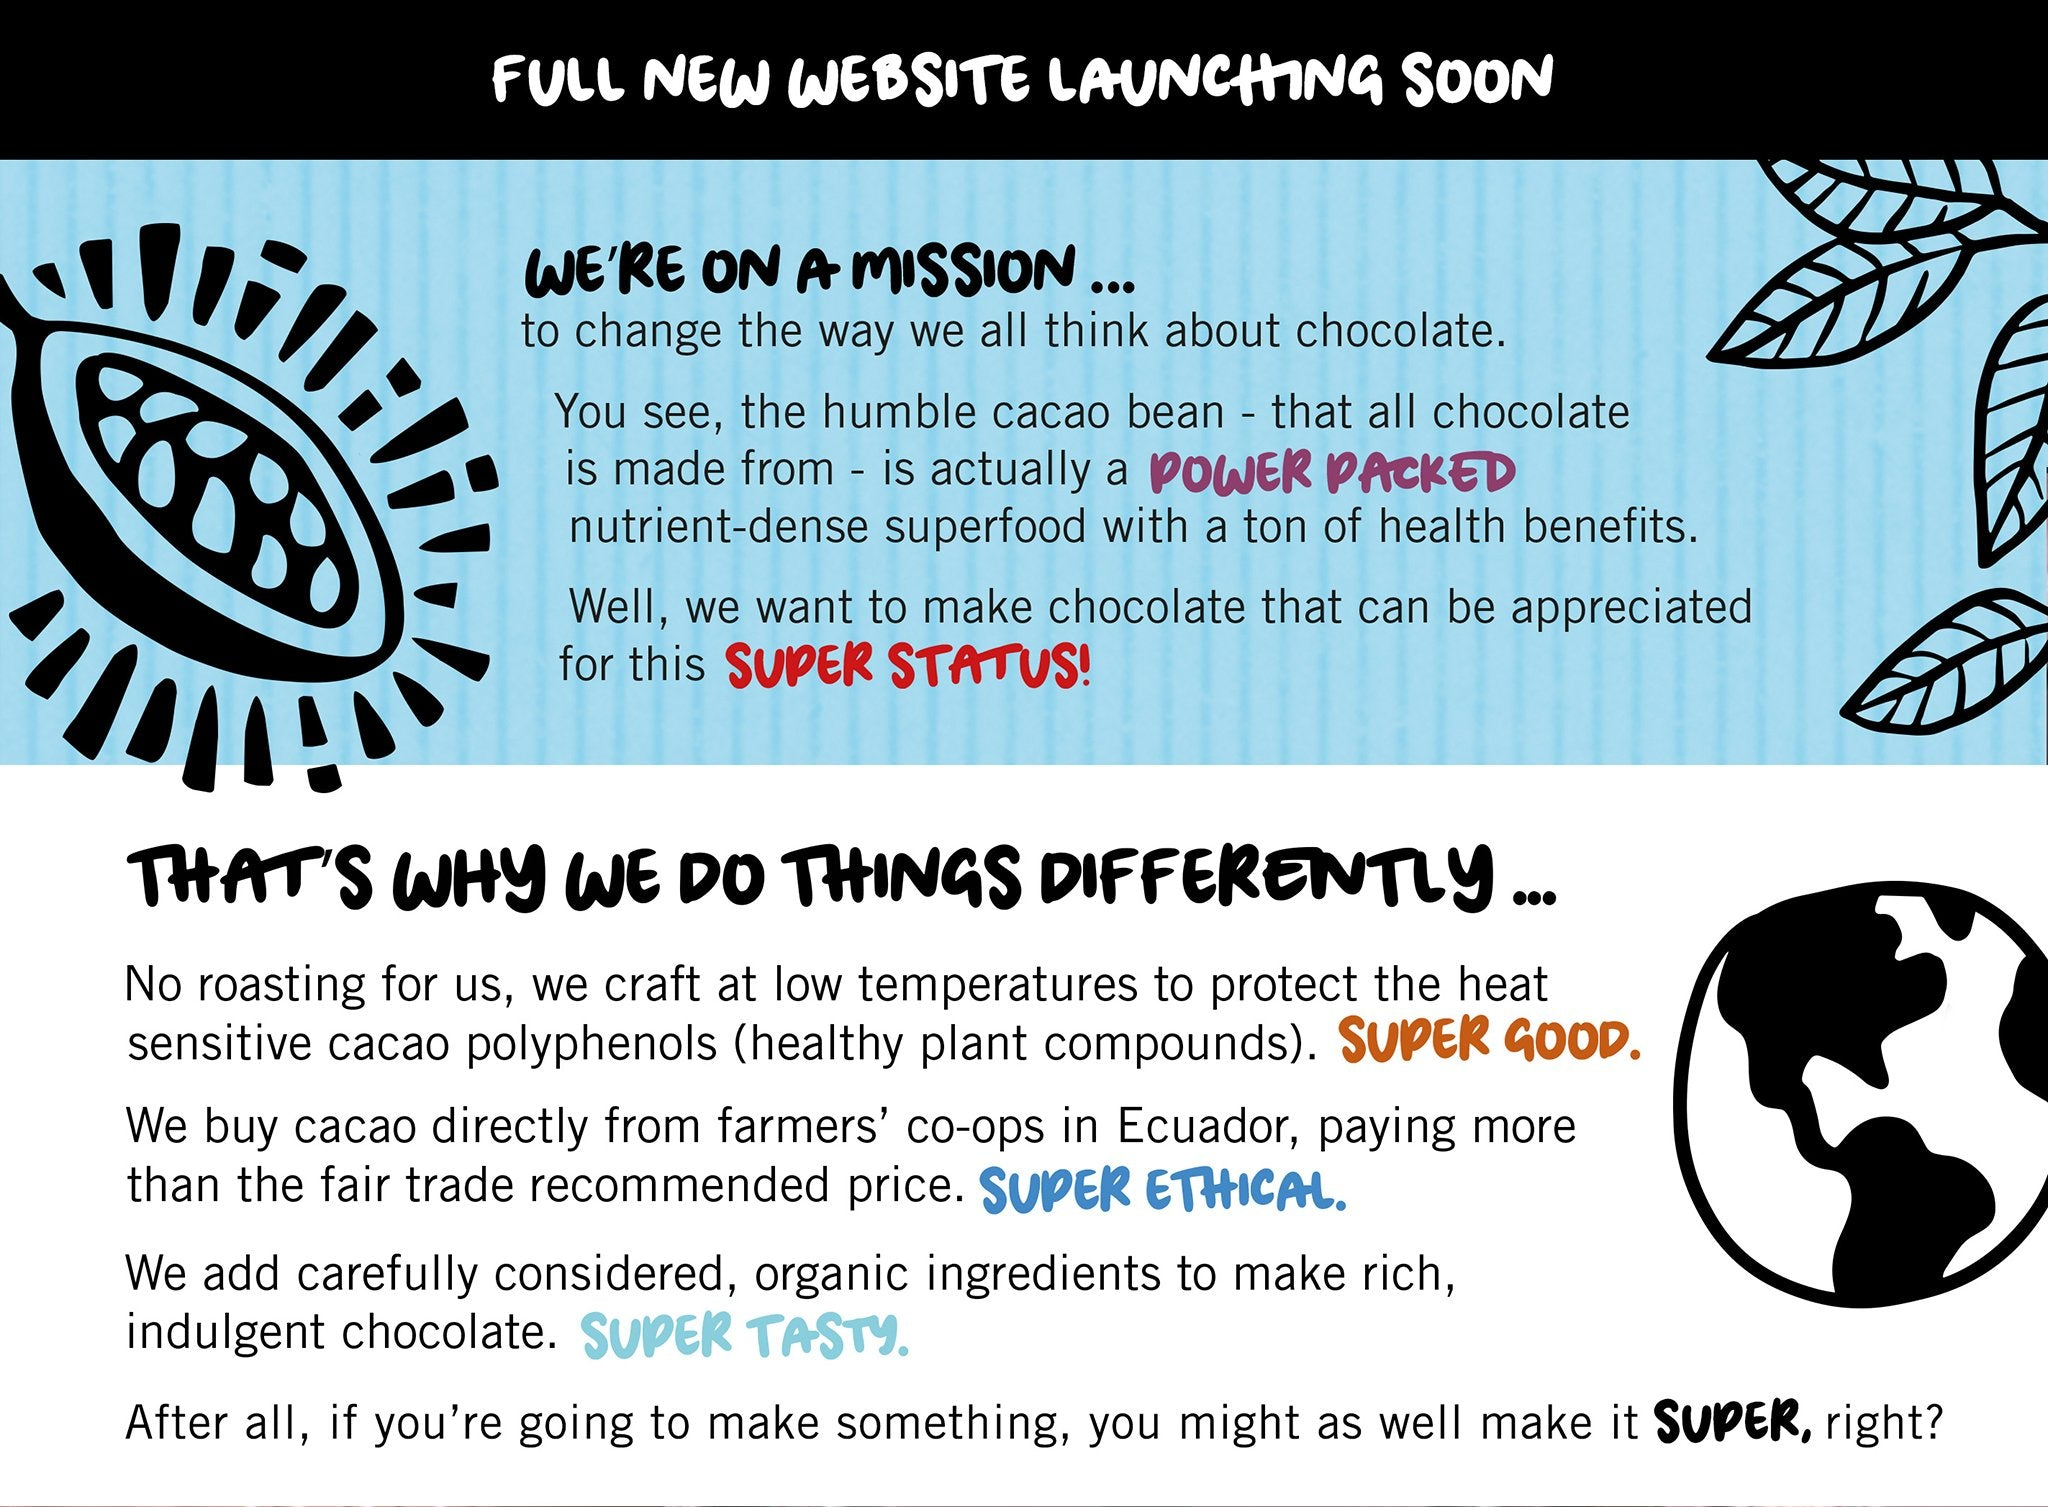 were on a mission to change the way people think about chocolate